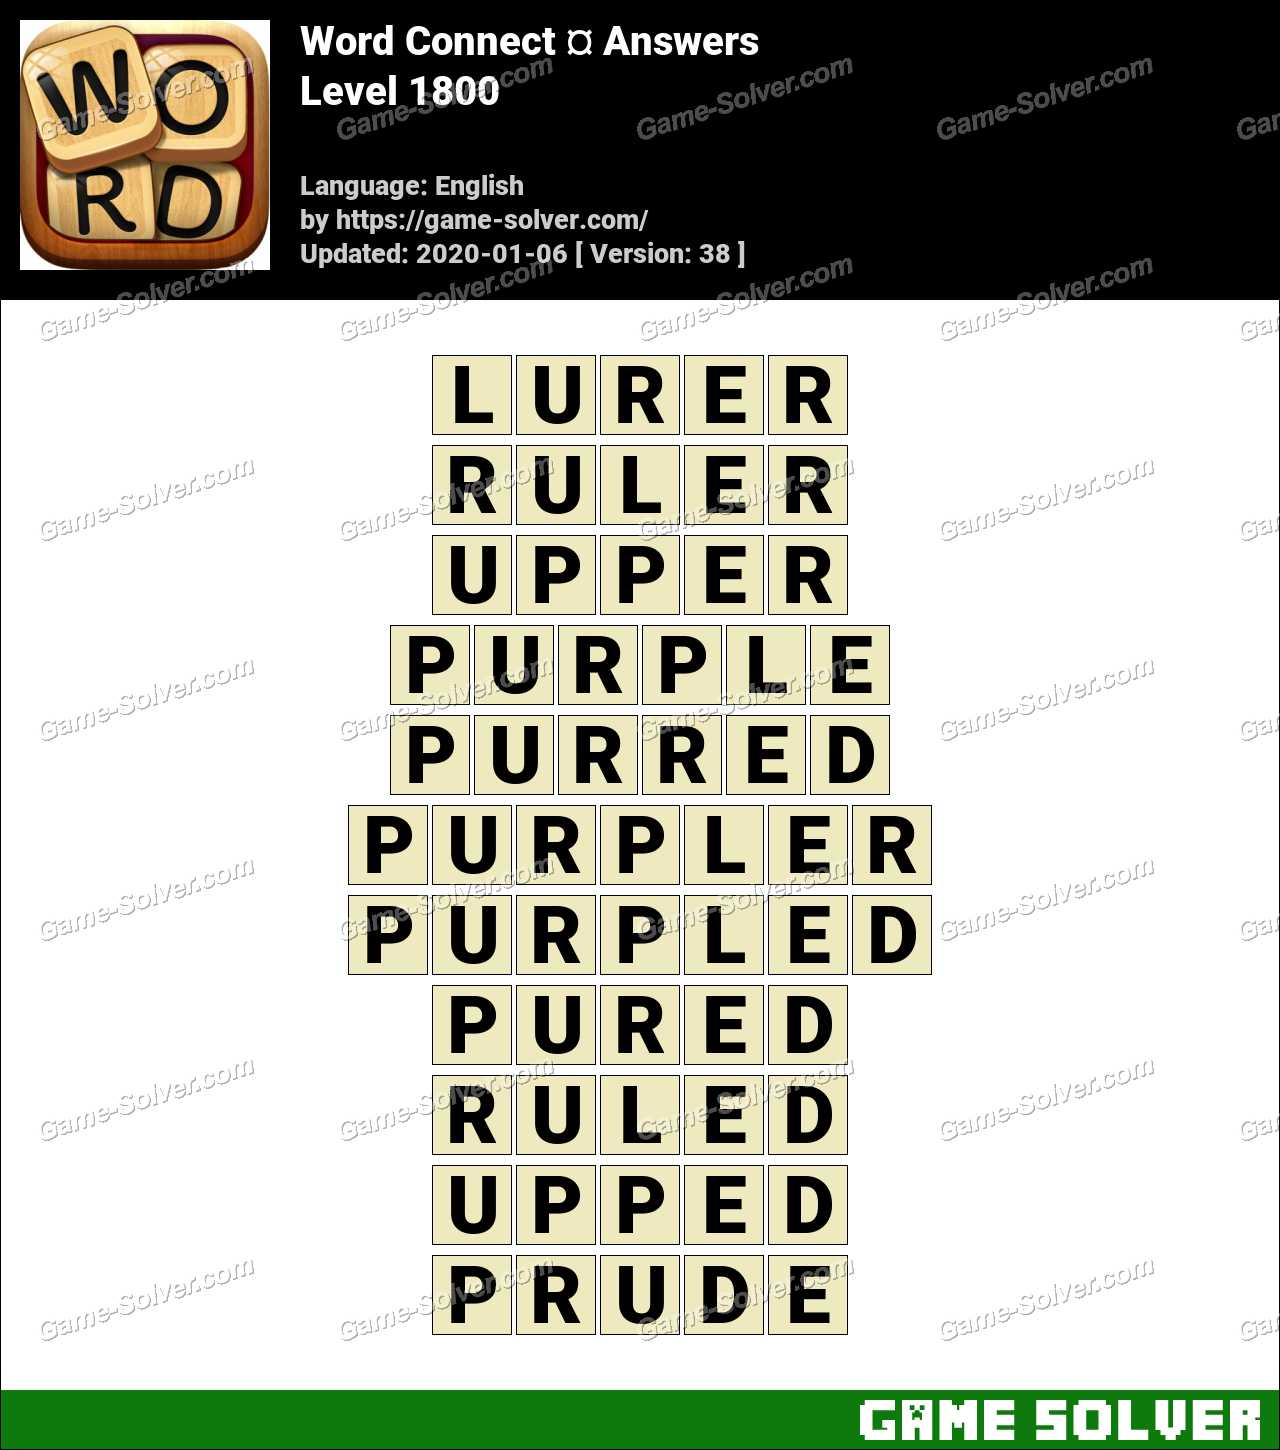 Word Connect Level 1800 Answers